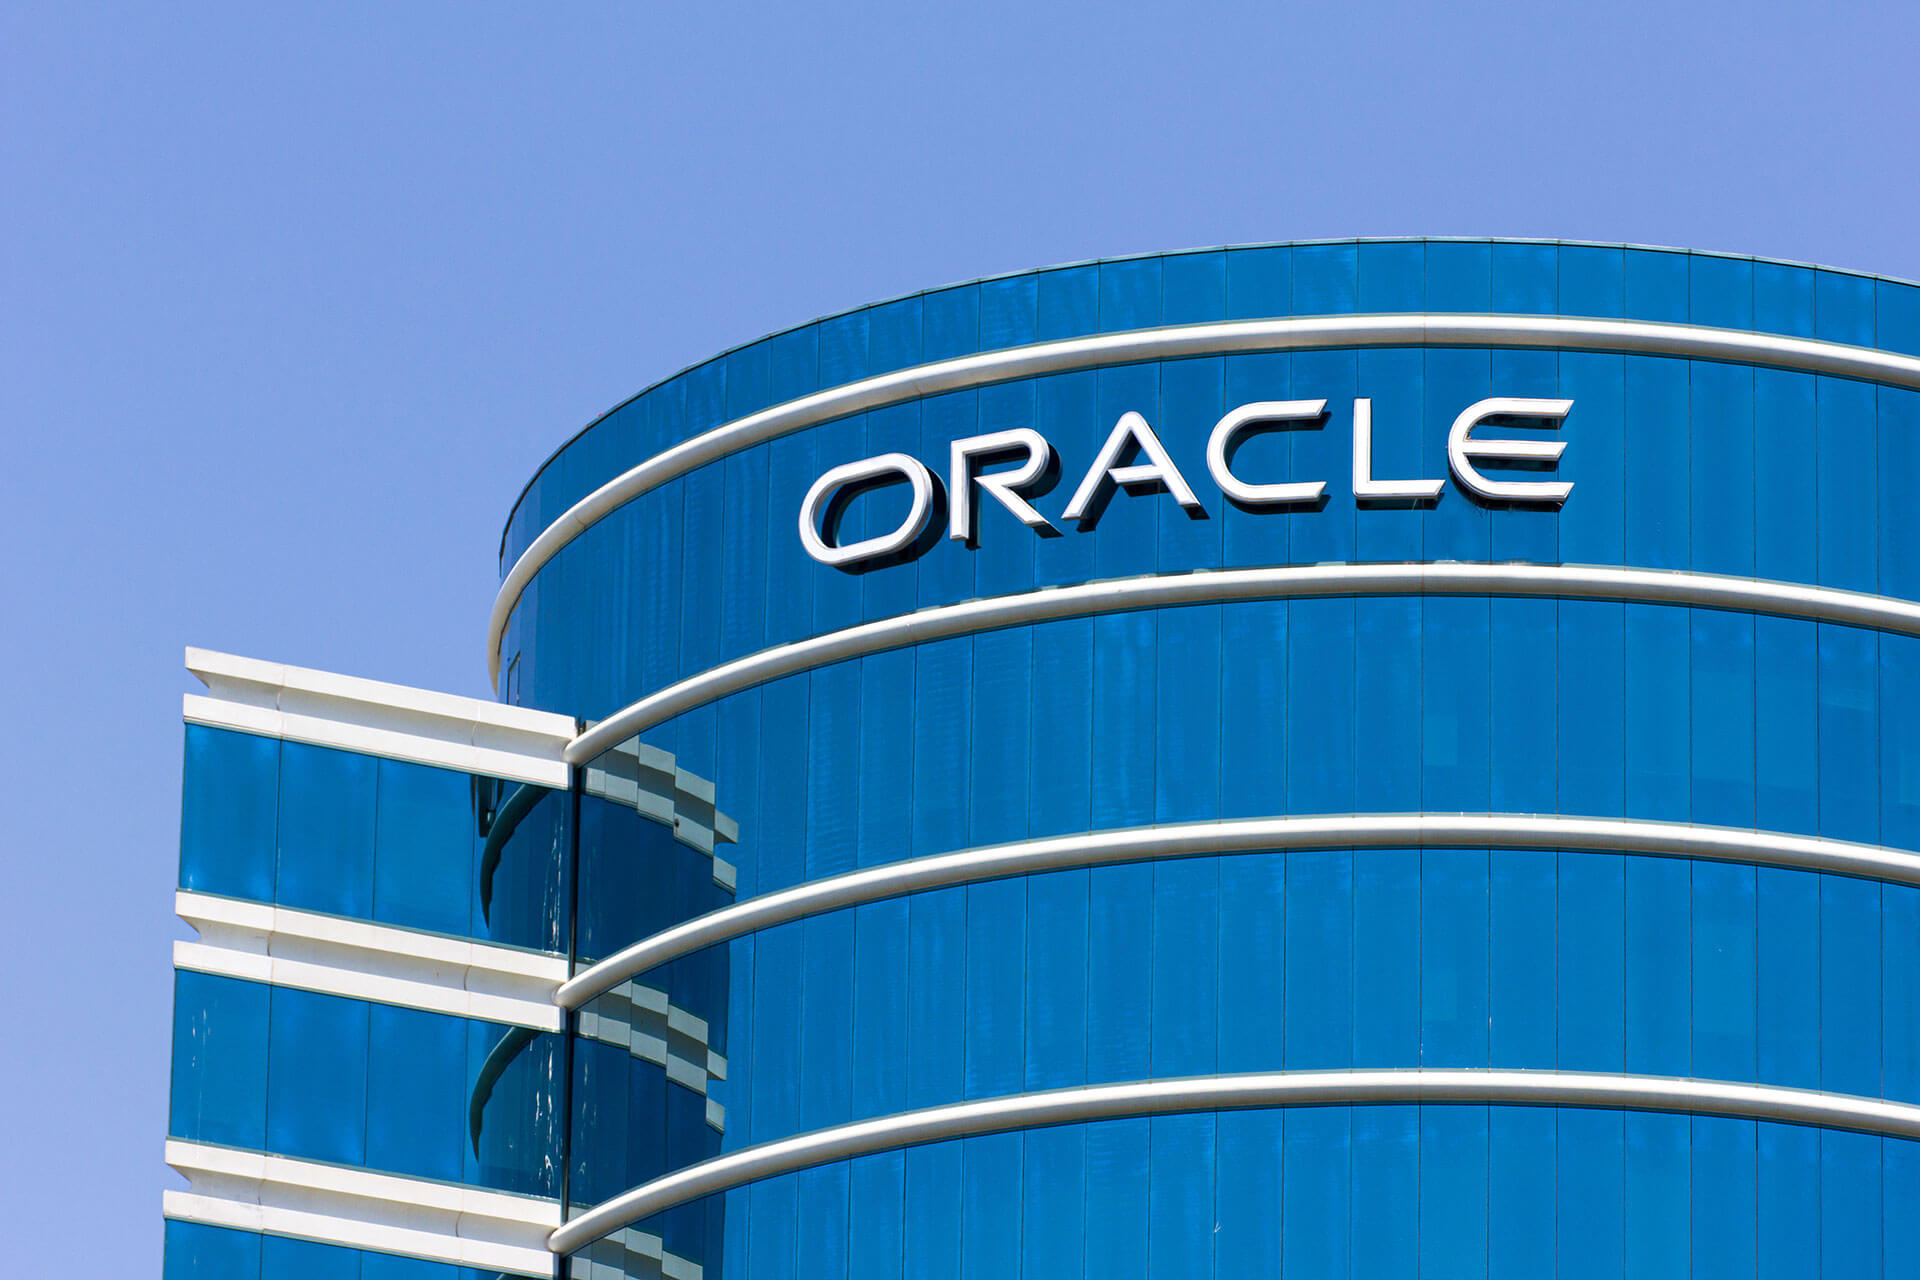 Website cookie consent violation could cost billions for Oracle and Salesforce